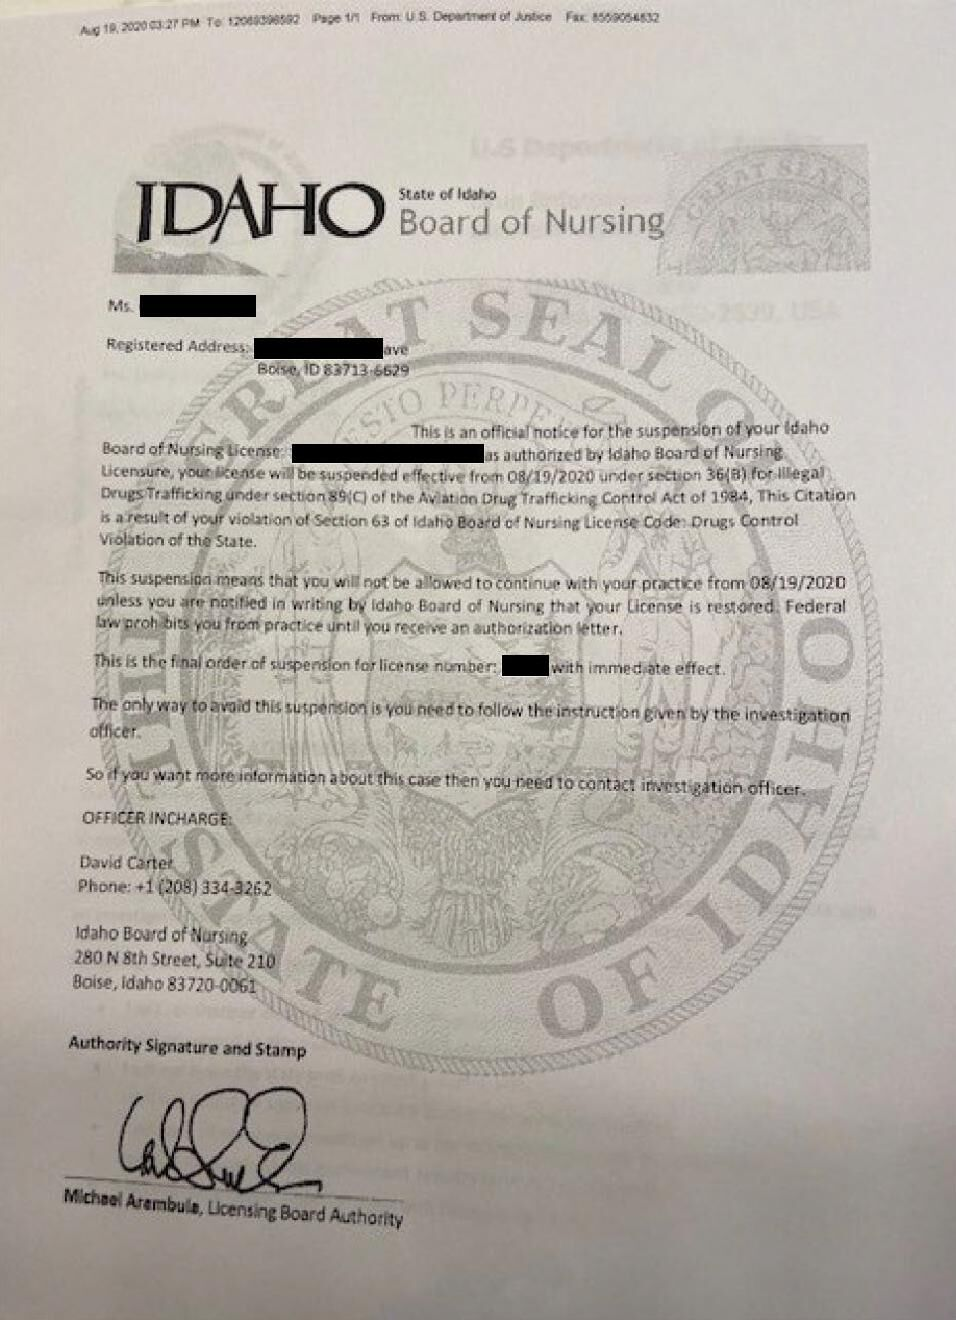 Scam Letter Targeting Idaho Nurses